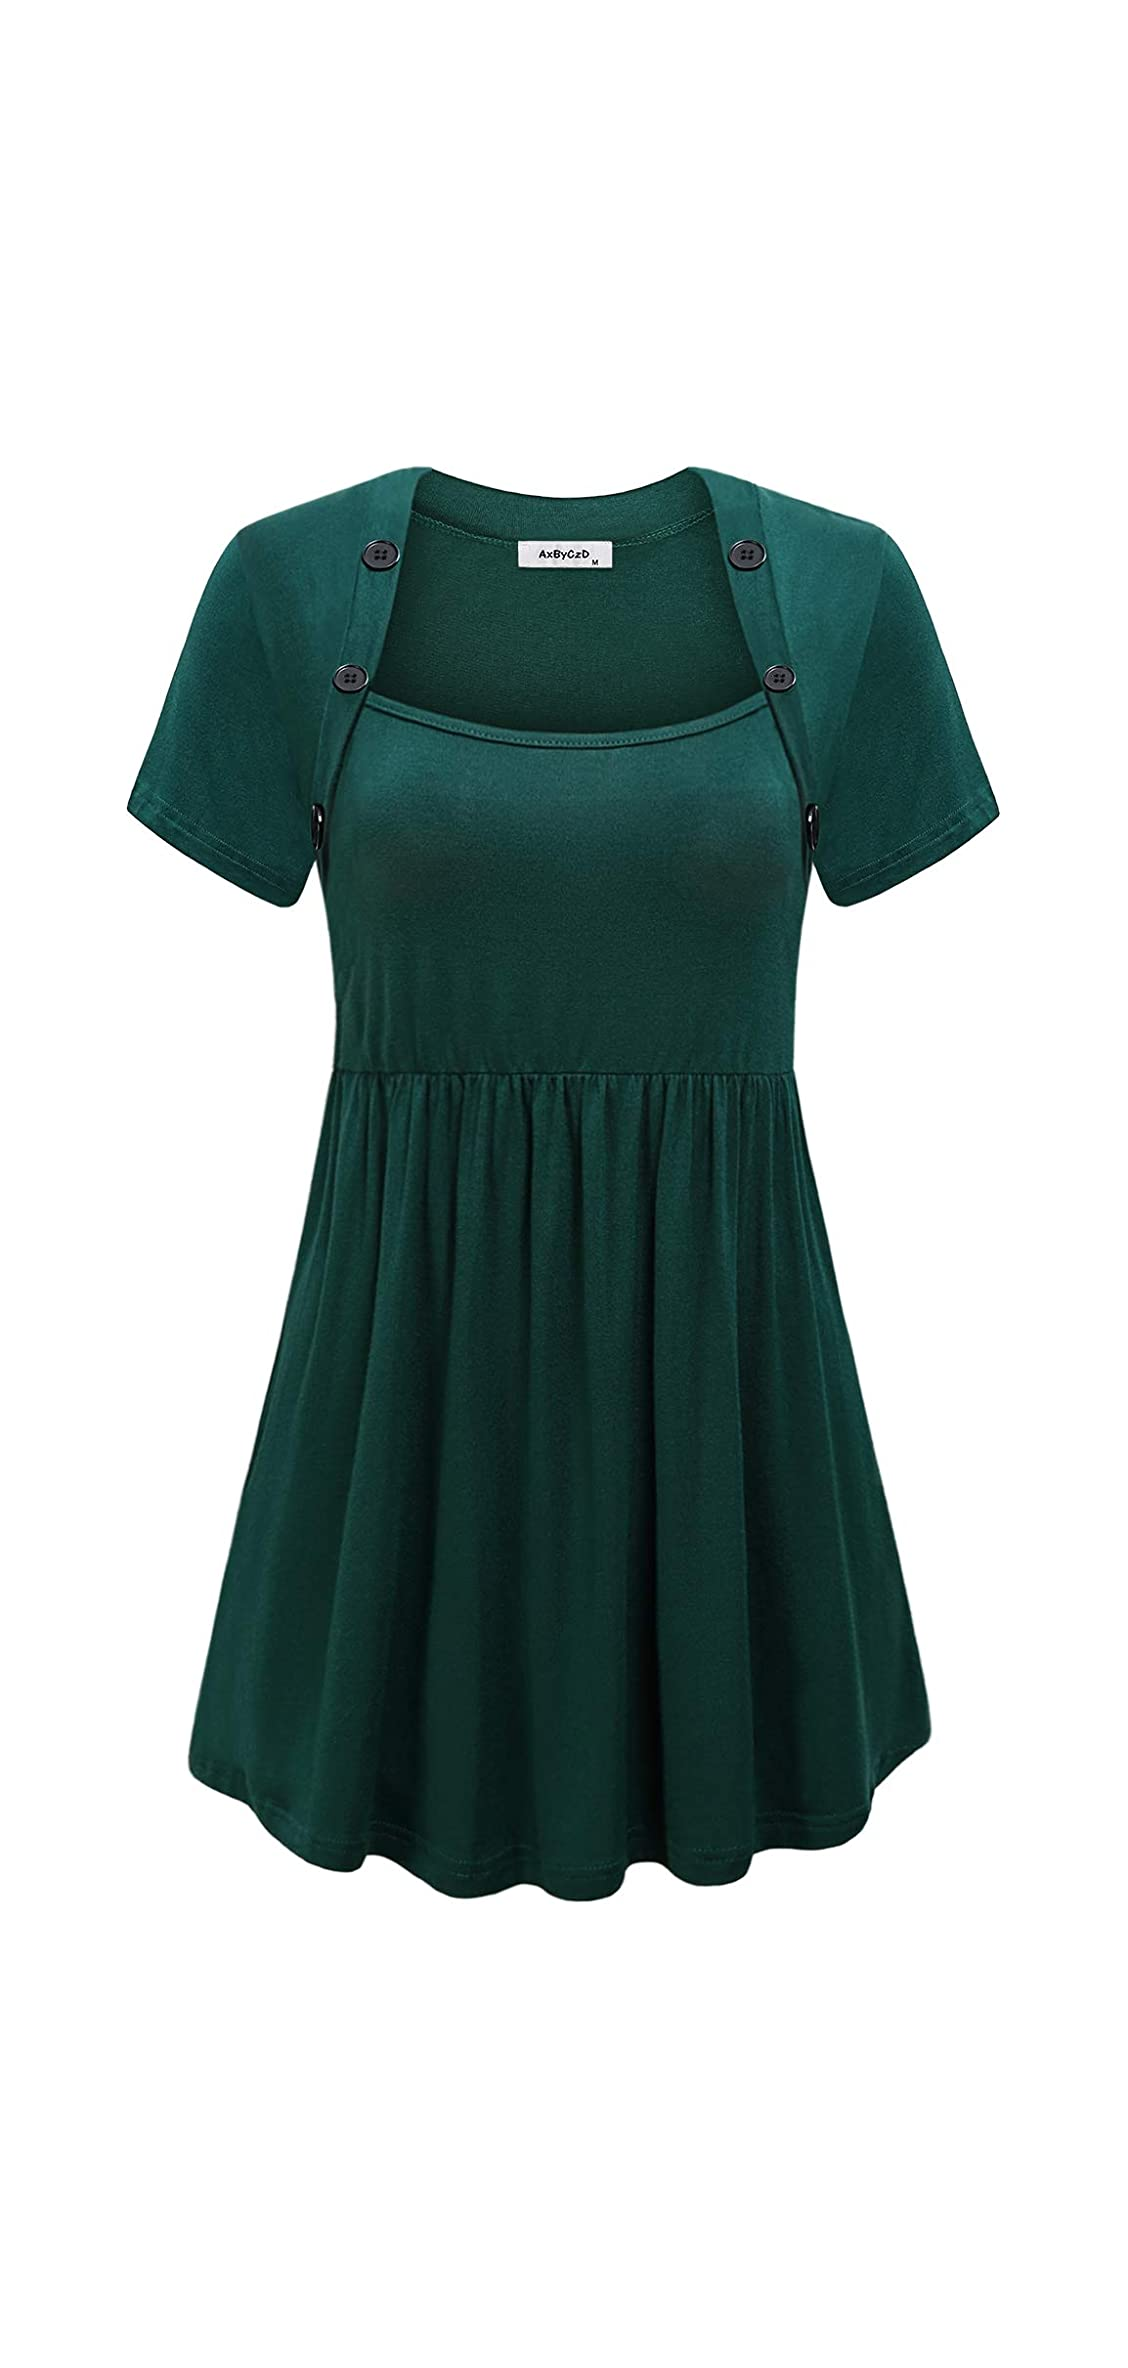 Women's Square Neck With Buttons Short Sleeve Pleated